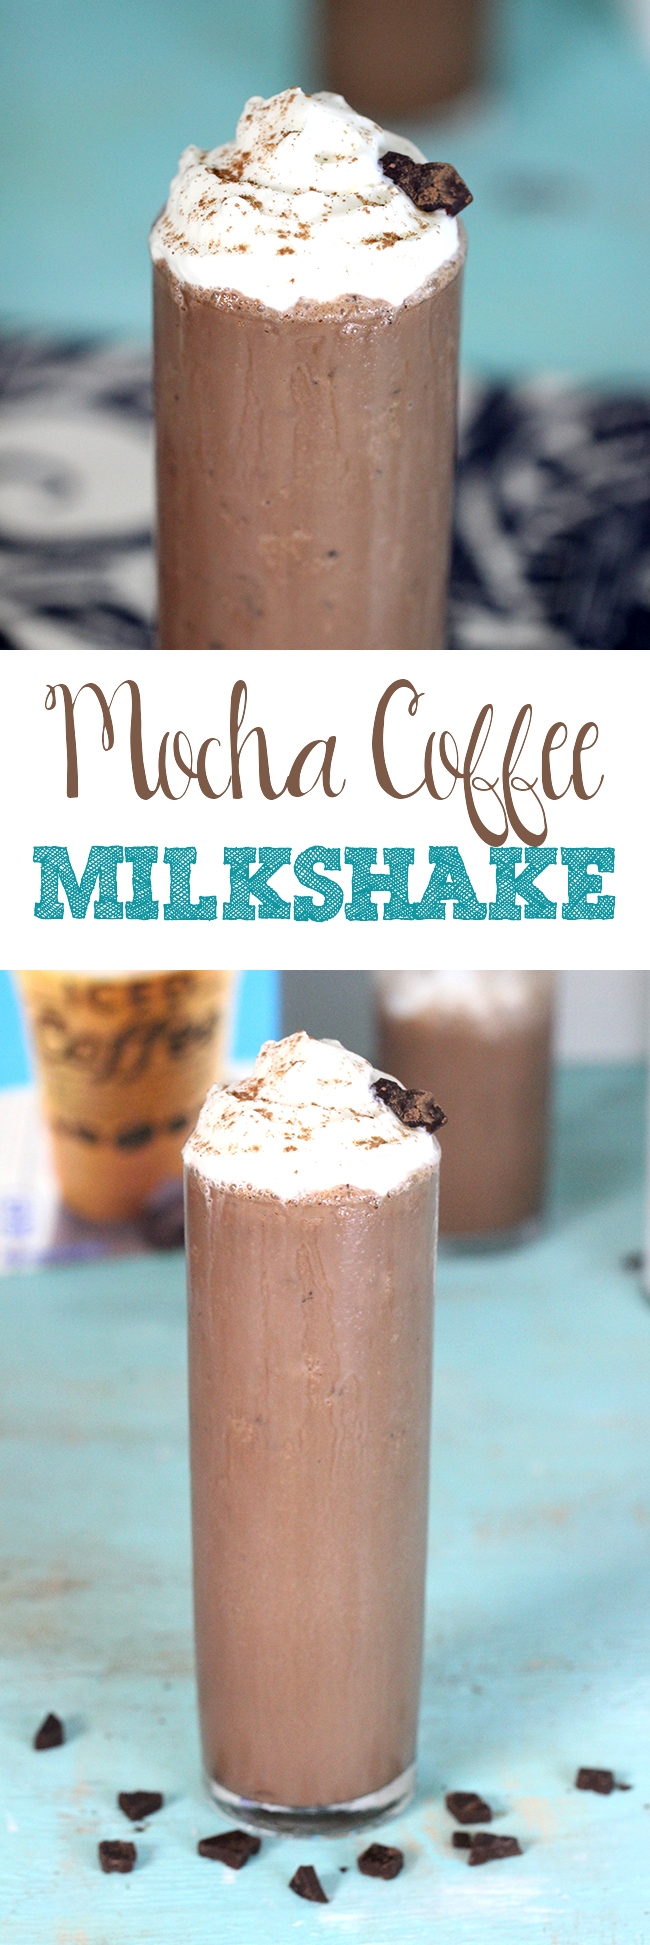 """Drool Time! Can't remember the last time I made a milkshake just for me!! """"Me Time"""" Mocha Coffee Milkshake"""